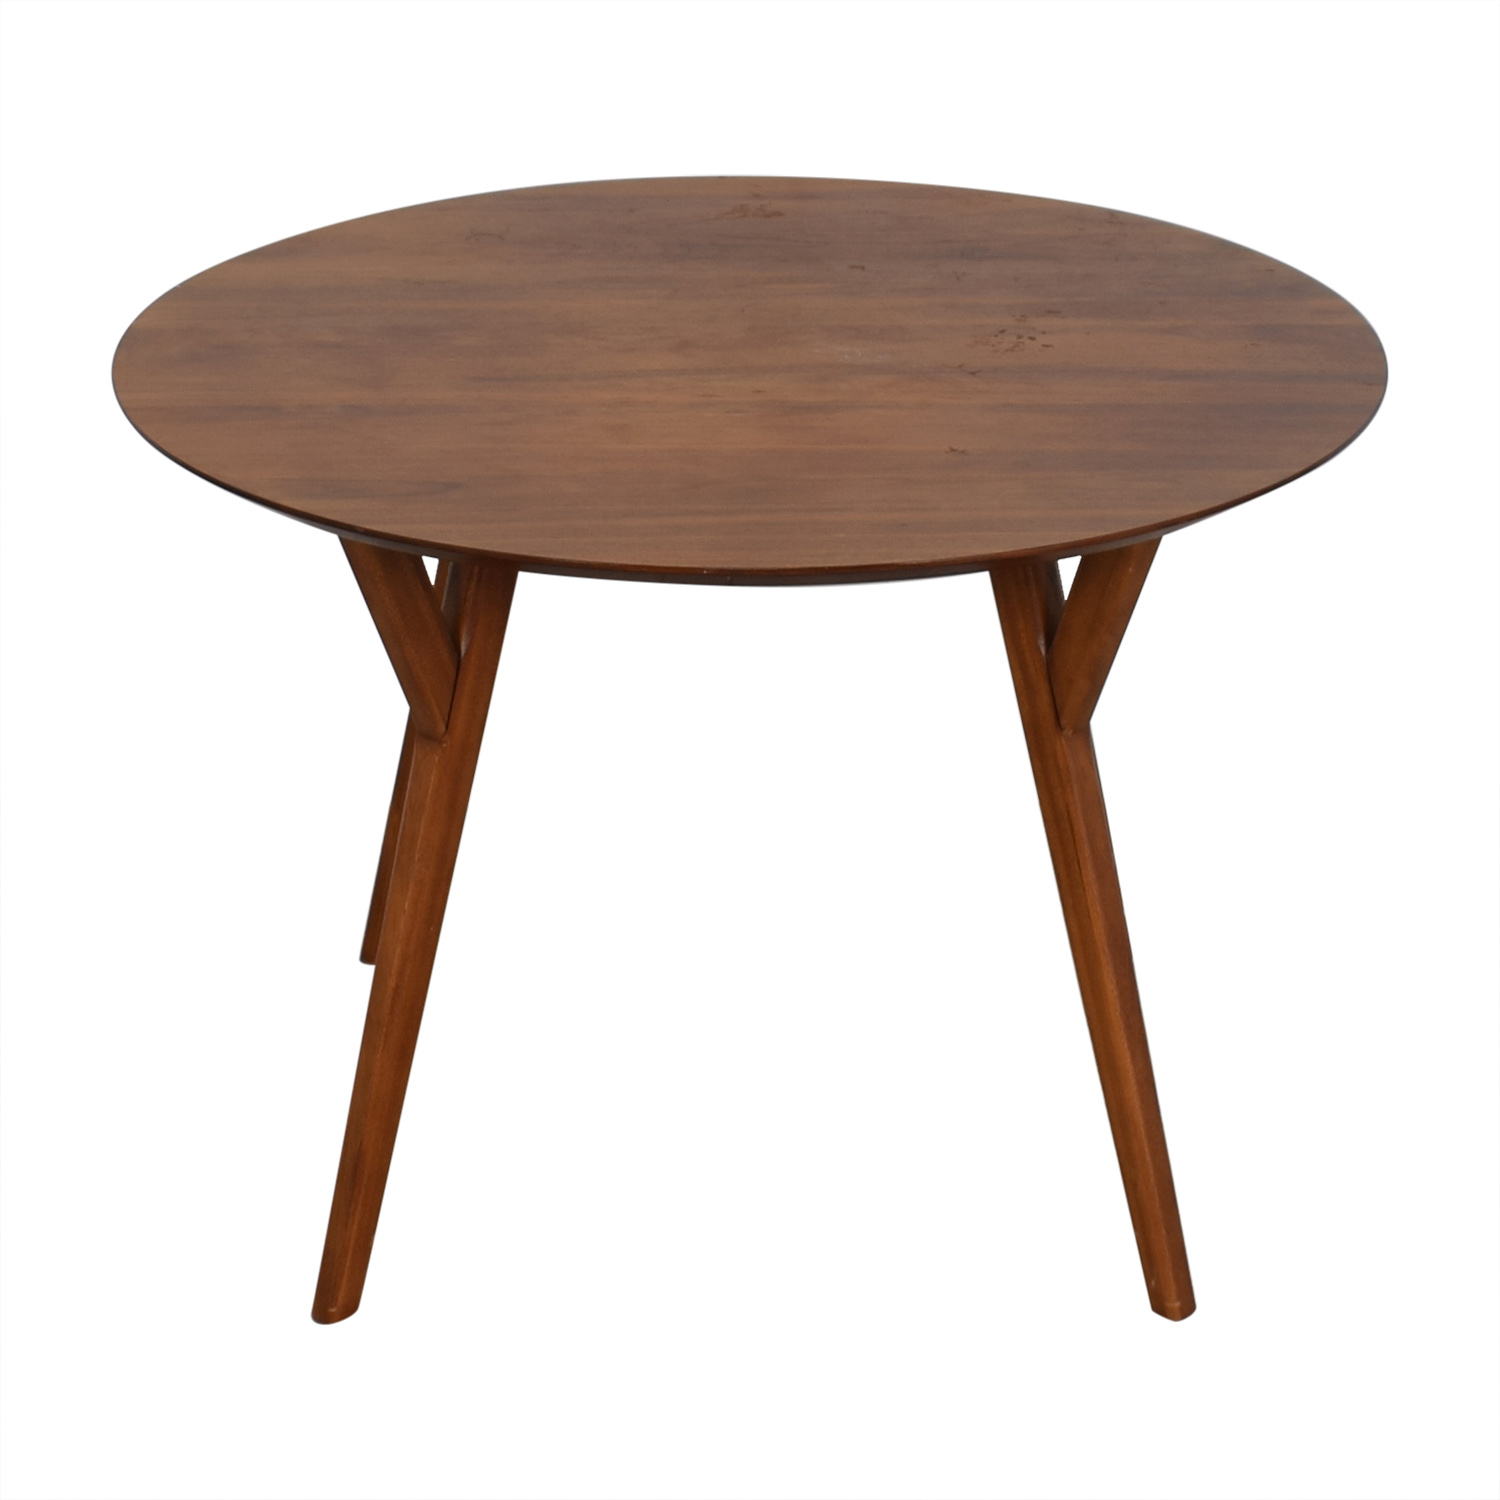 West Elm West Elm Round Dining Table brown